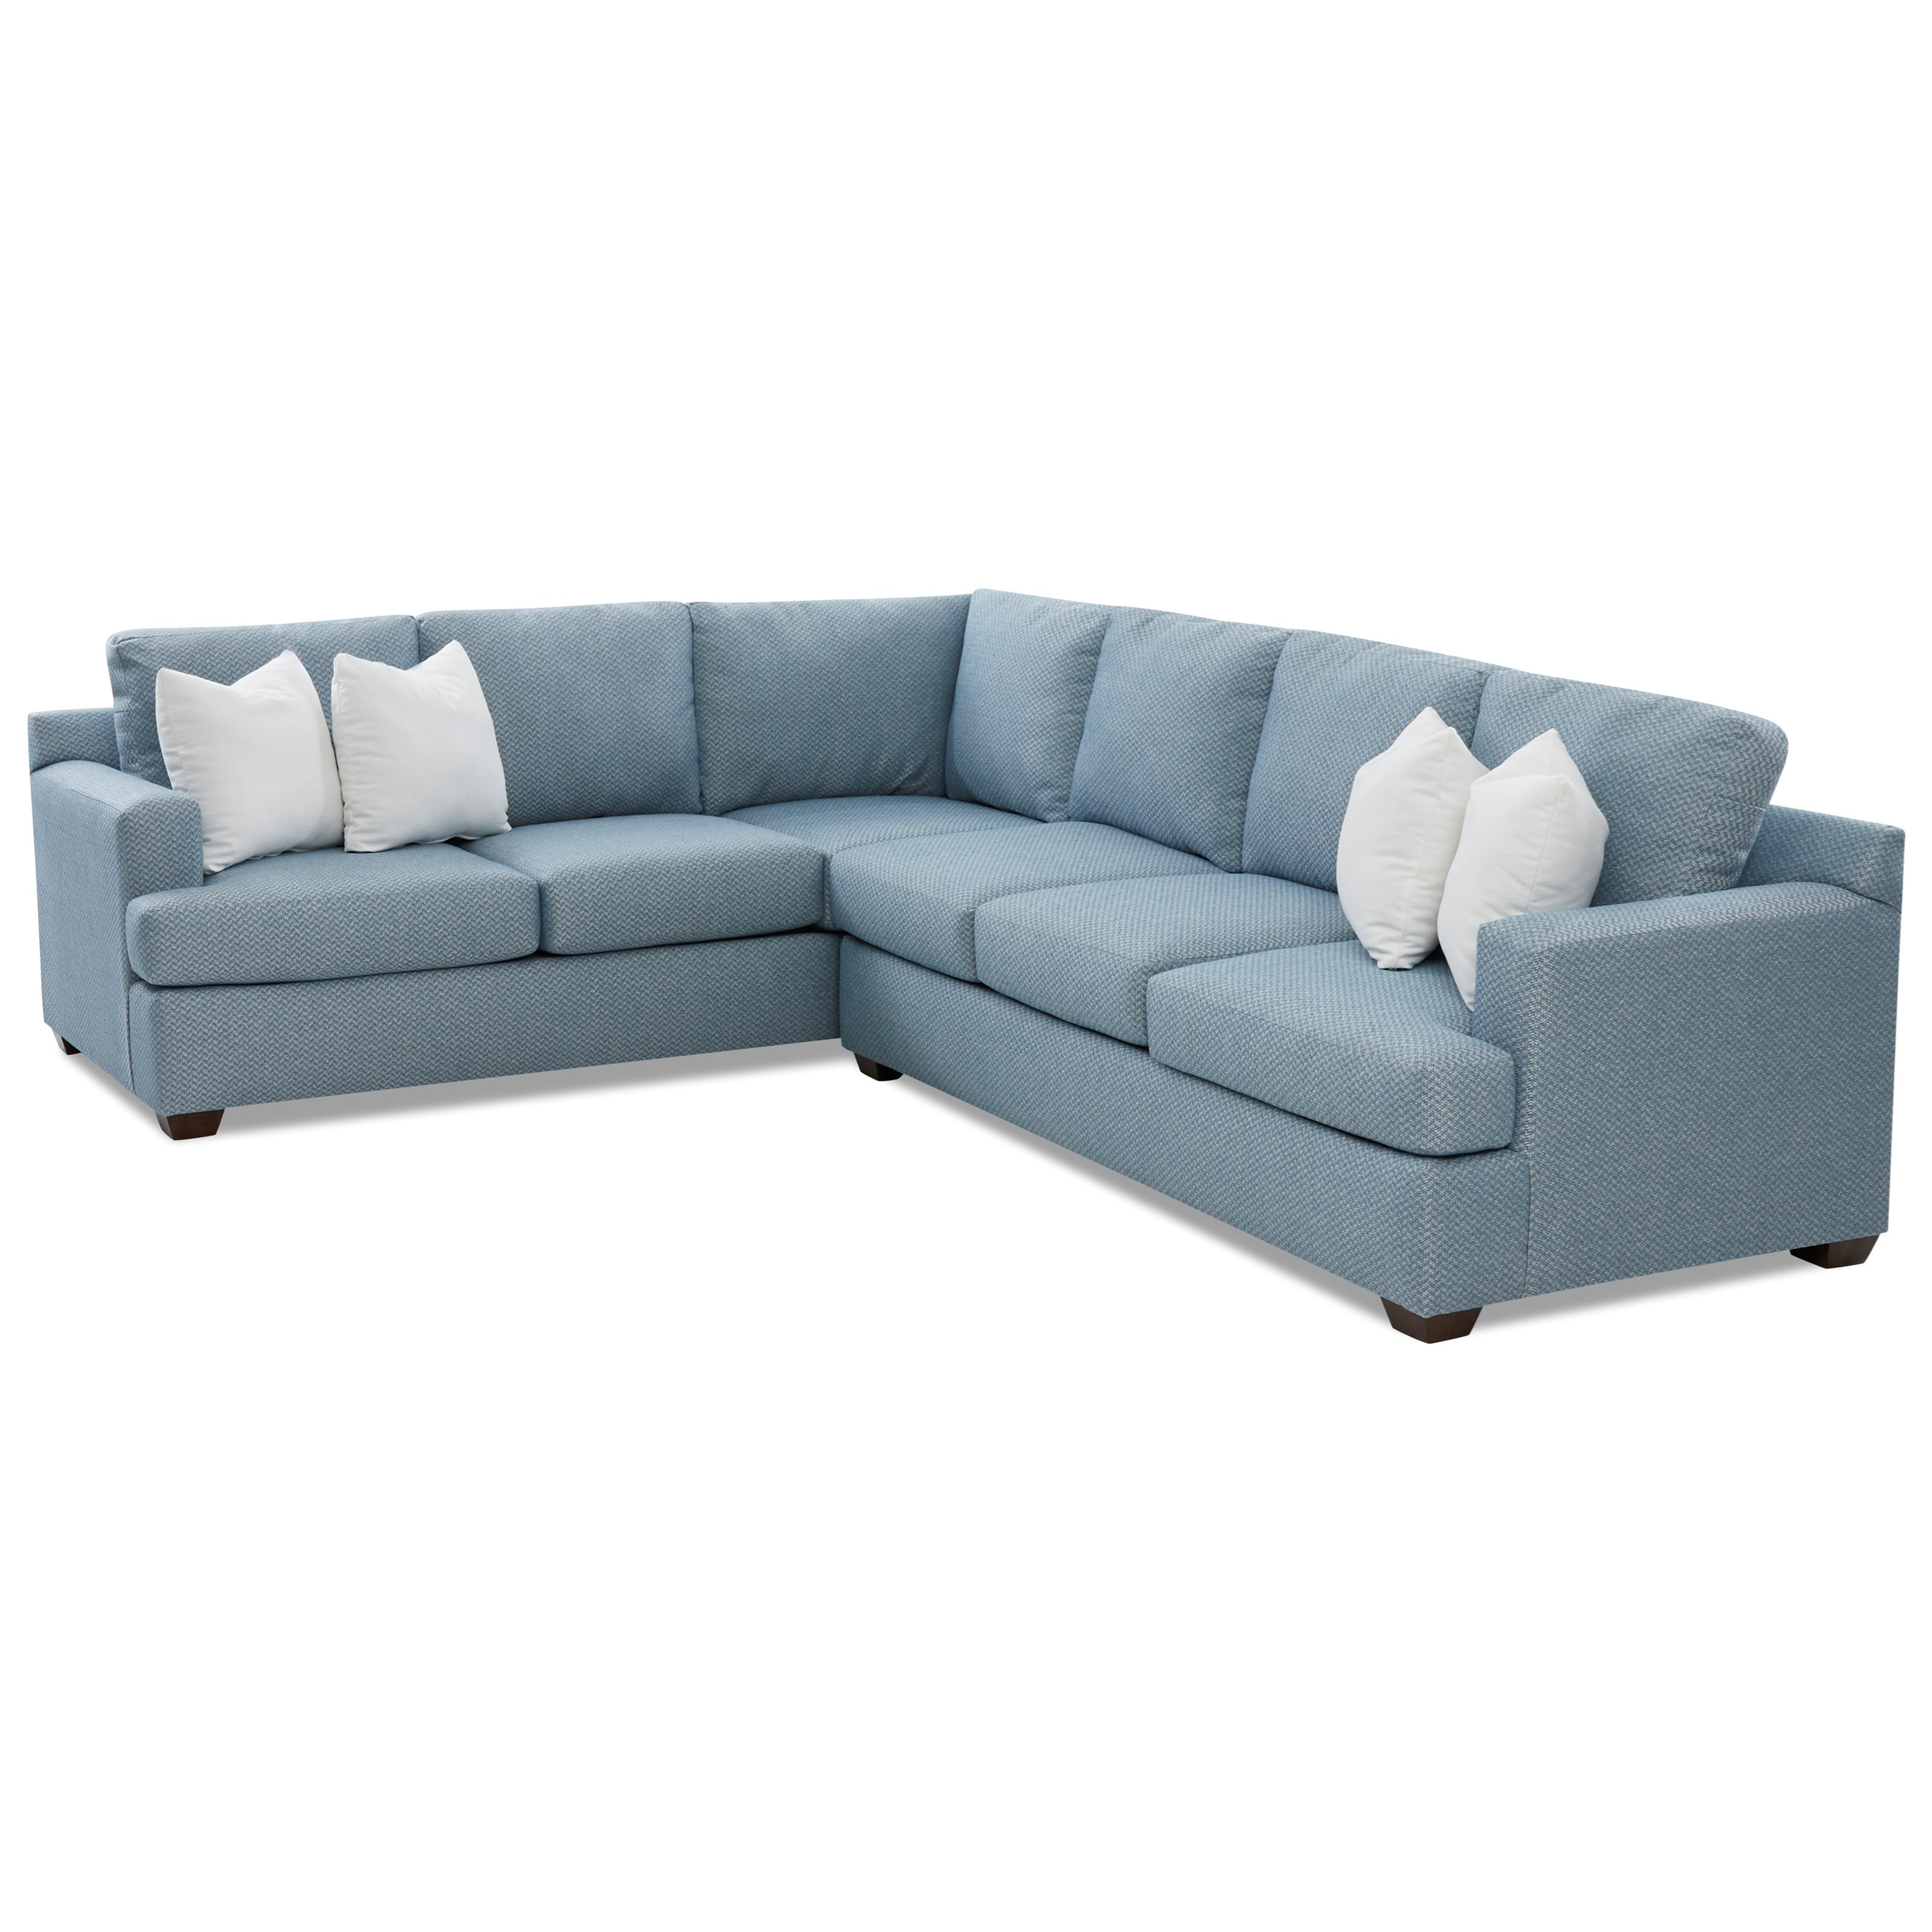 Klaussner Juniper 5 Seat Sectional Sofa With Laf Corner Sofa Value City Furniture Sectional Sofas